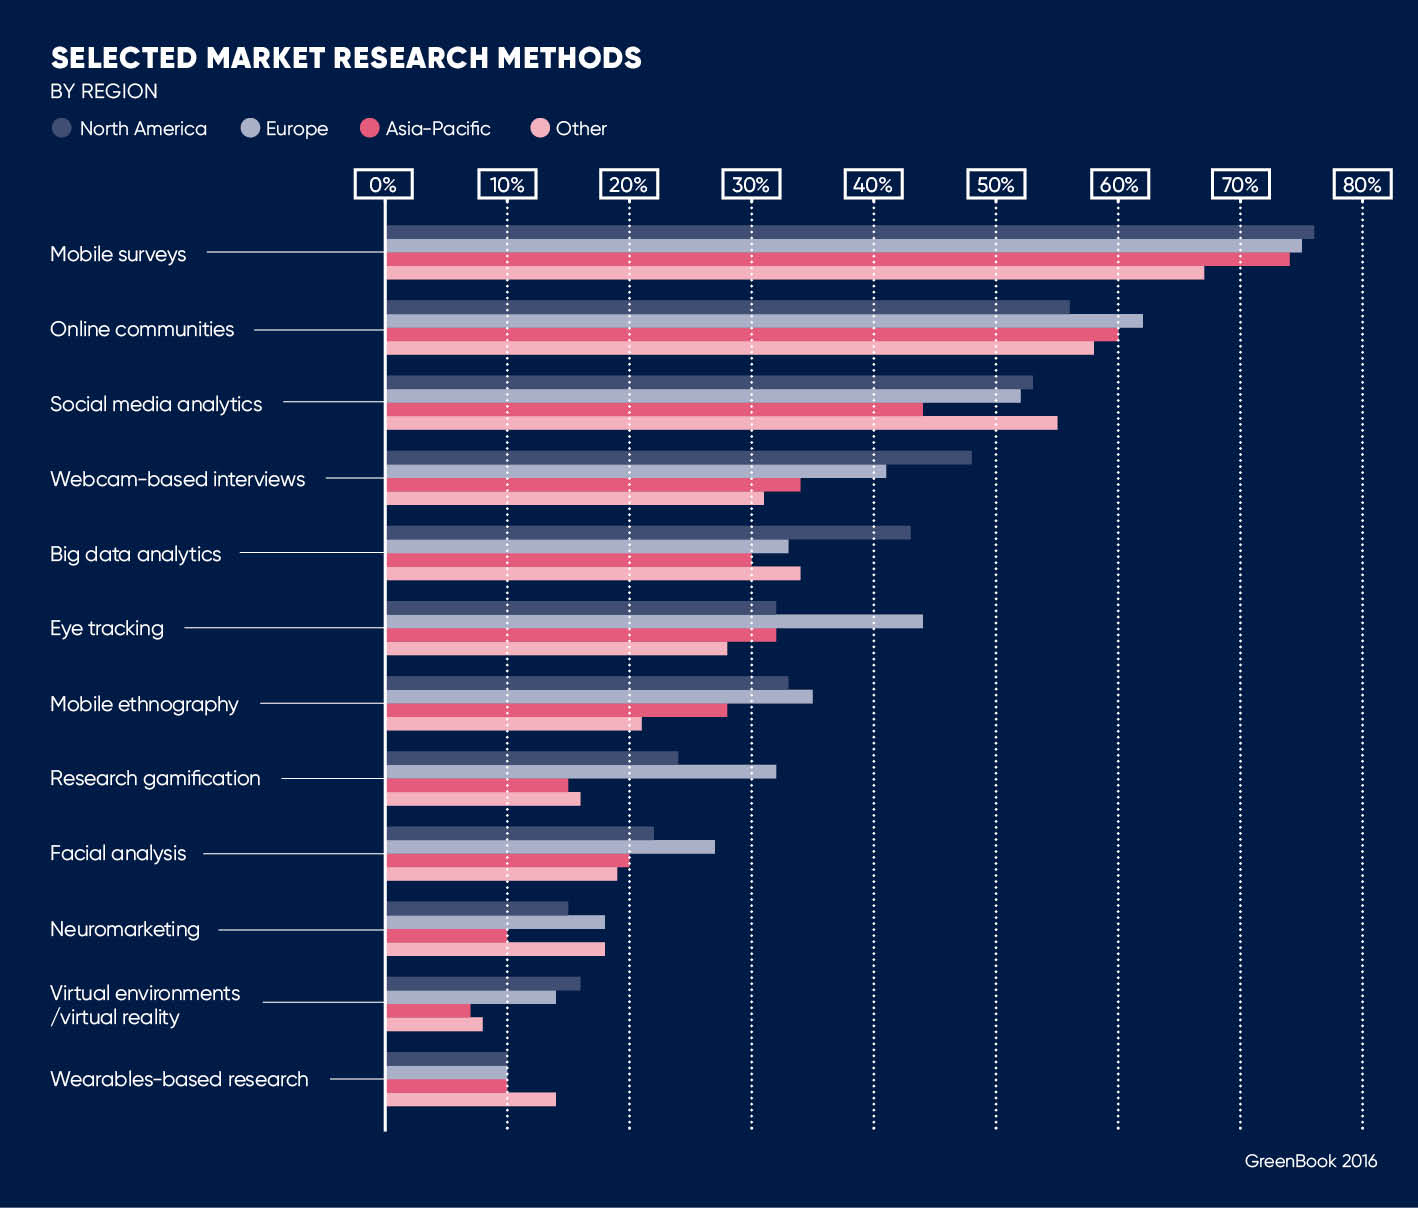 SELECTED MARKET RESEARCH METHODS graph